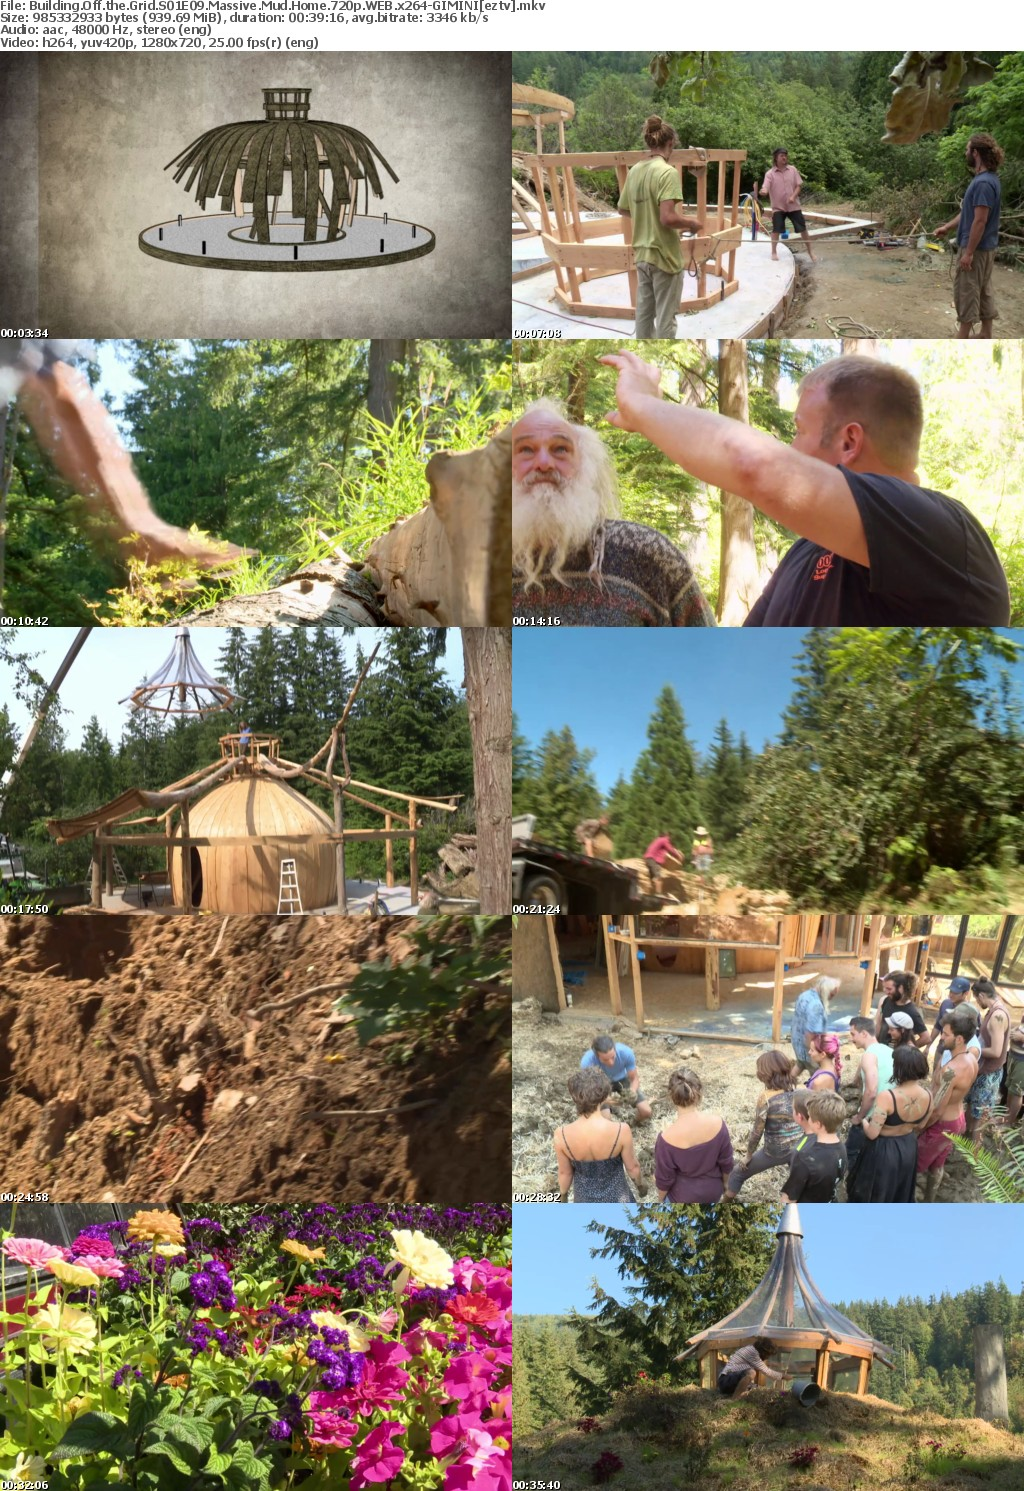 Building Off the Grid S01E09 Massive Mud Home 720p WEB x264 GIMINI